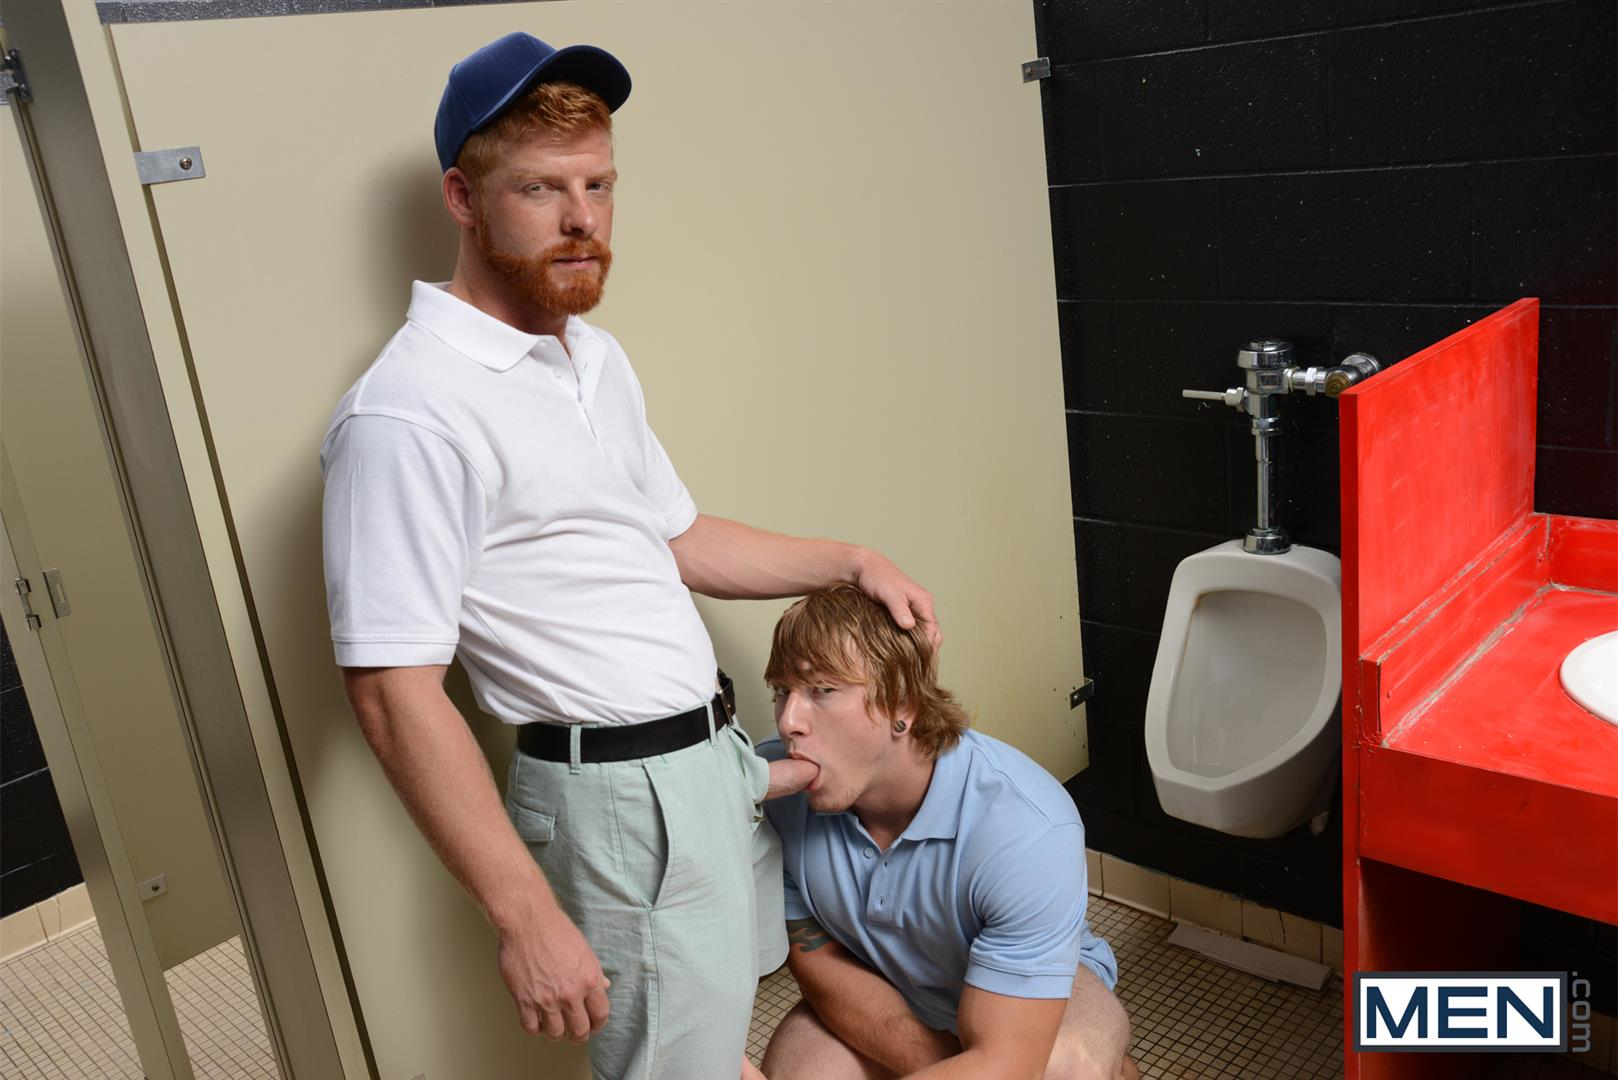 Men-Jizz-Orgy-Swingers-Bennett-Anthony-and-Cameron-Foster-and-Colt-Rivers-and-Tom-Faulk-Fucking-Bathroom-Amateur-Gay-Porn-10 Hung Golfing Buddies Fucking In The Bathroom and Clubhouse